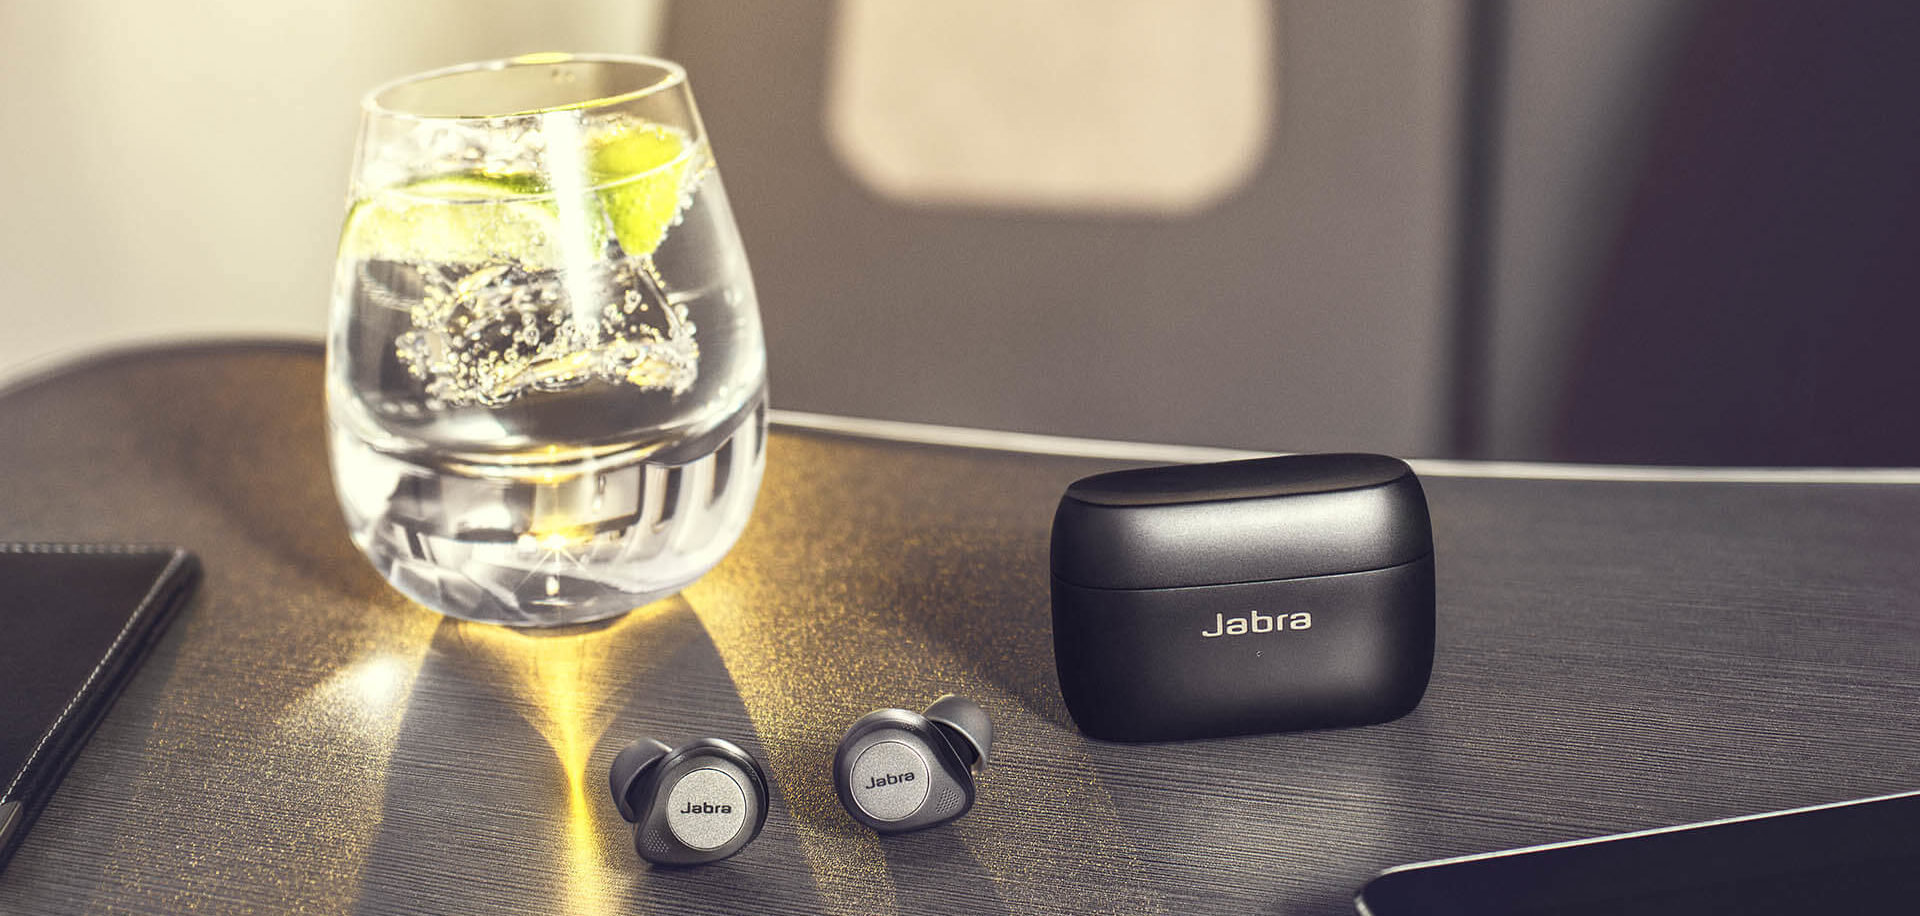 Jabra unveils Elite 85t true wireless earbuds with active noise cancellation - Android Police